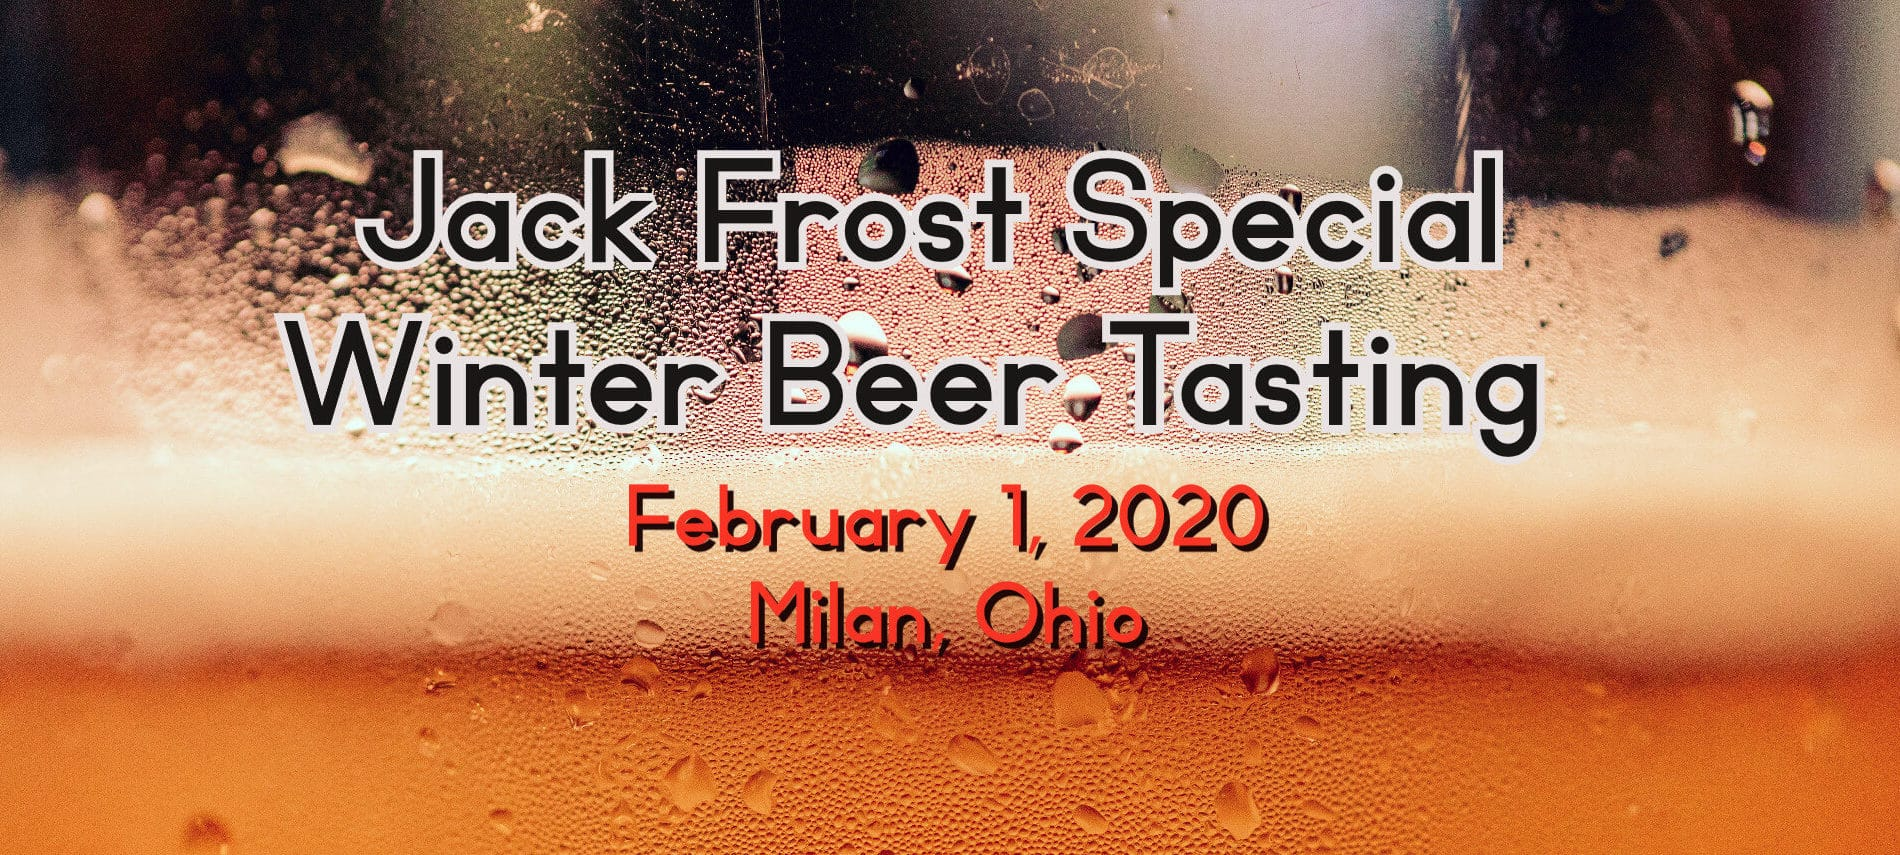 Beer in glass with text Jack Frost Specia Winter Beer Tasting - Feb 1, 2020, Milan, Ohio